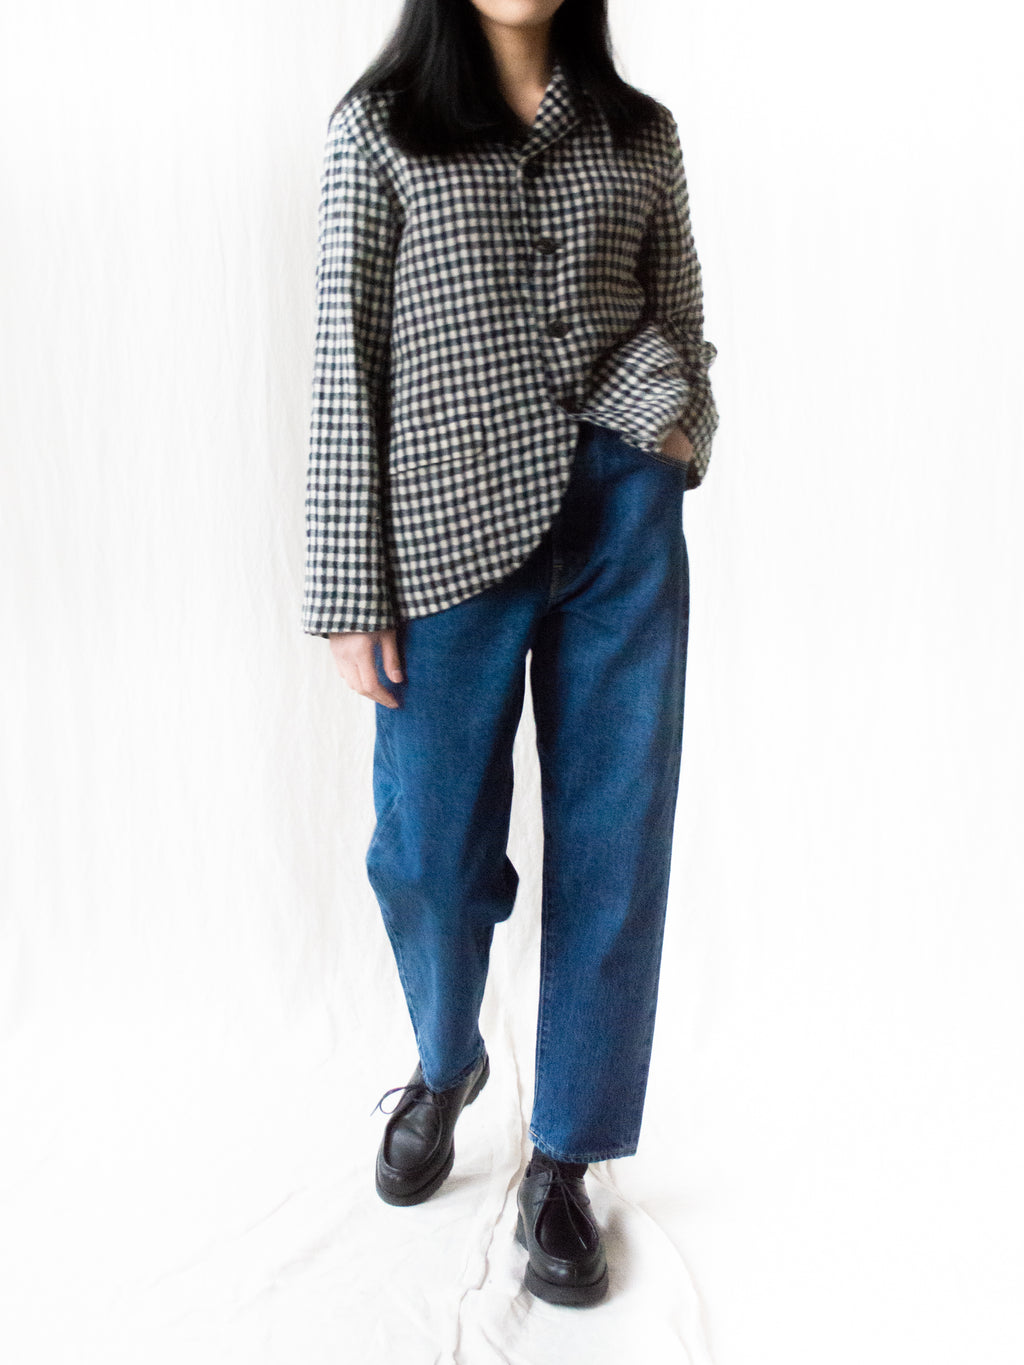 Cotton Wool Gingham Jacket - Natural x Black